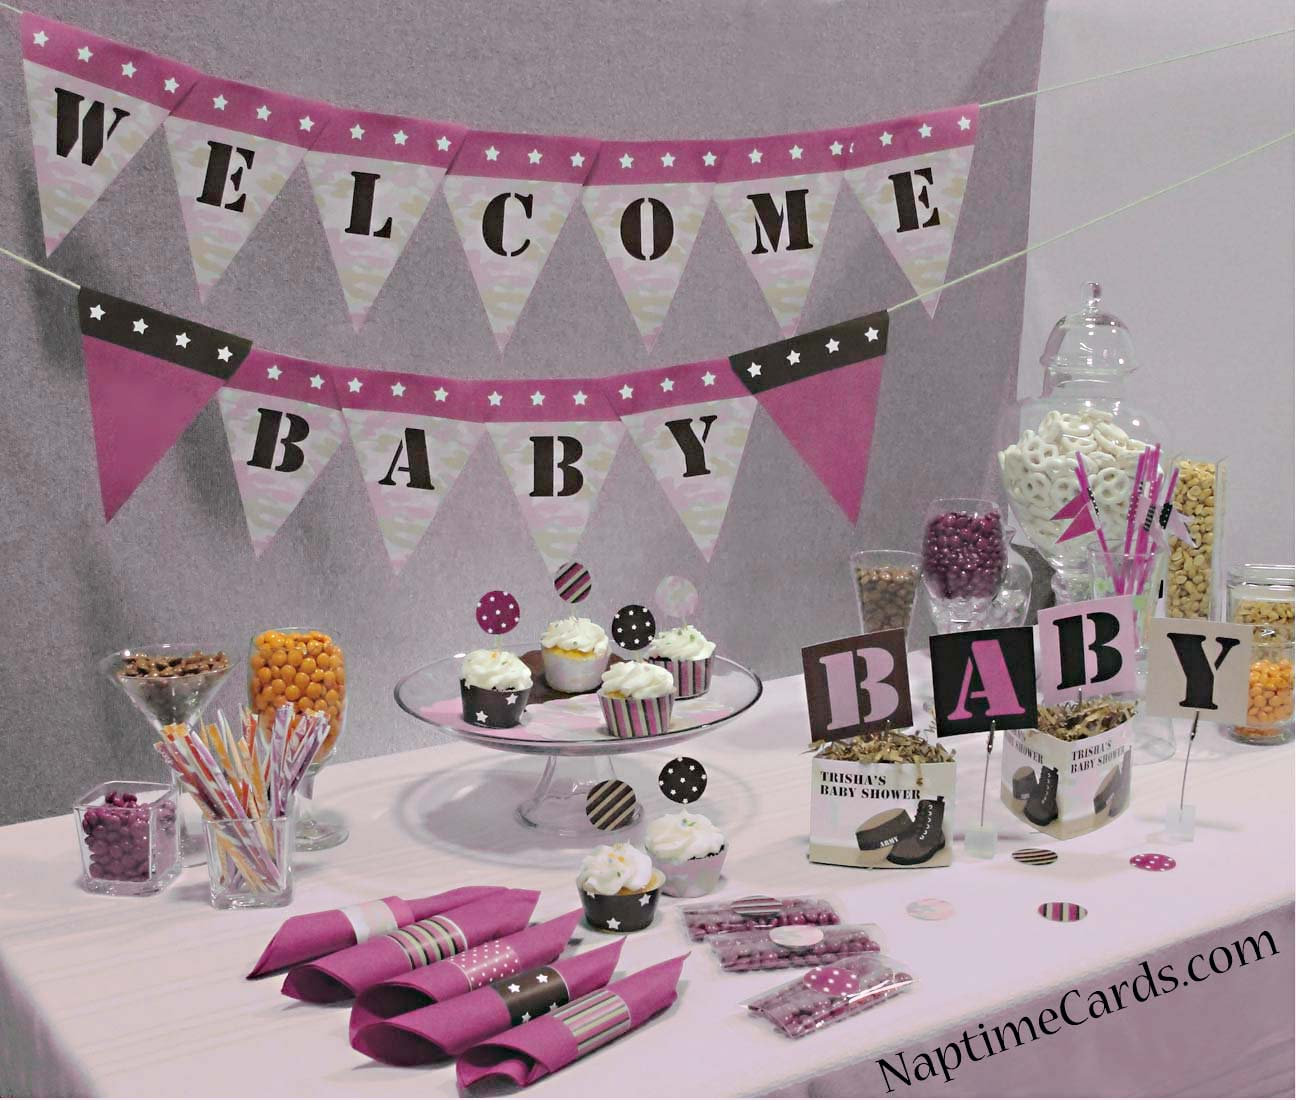 Baby Shower Designs - Arrangements 4 all